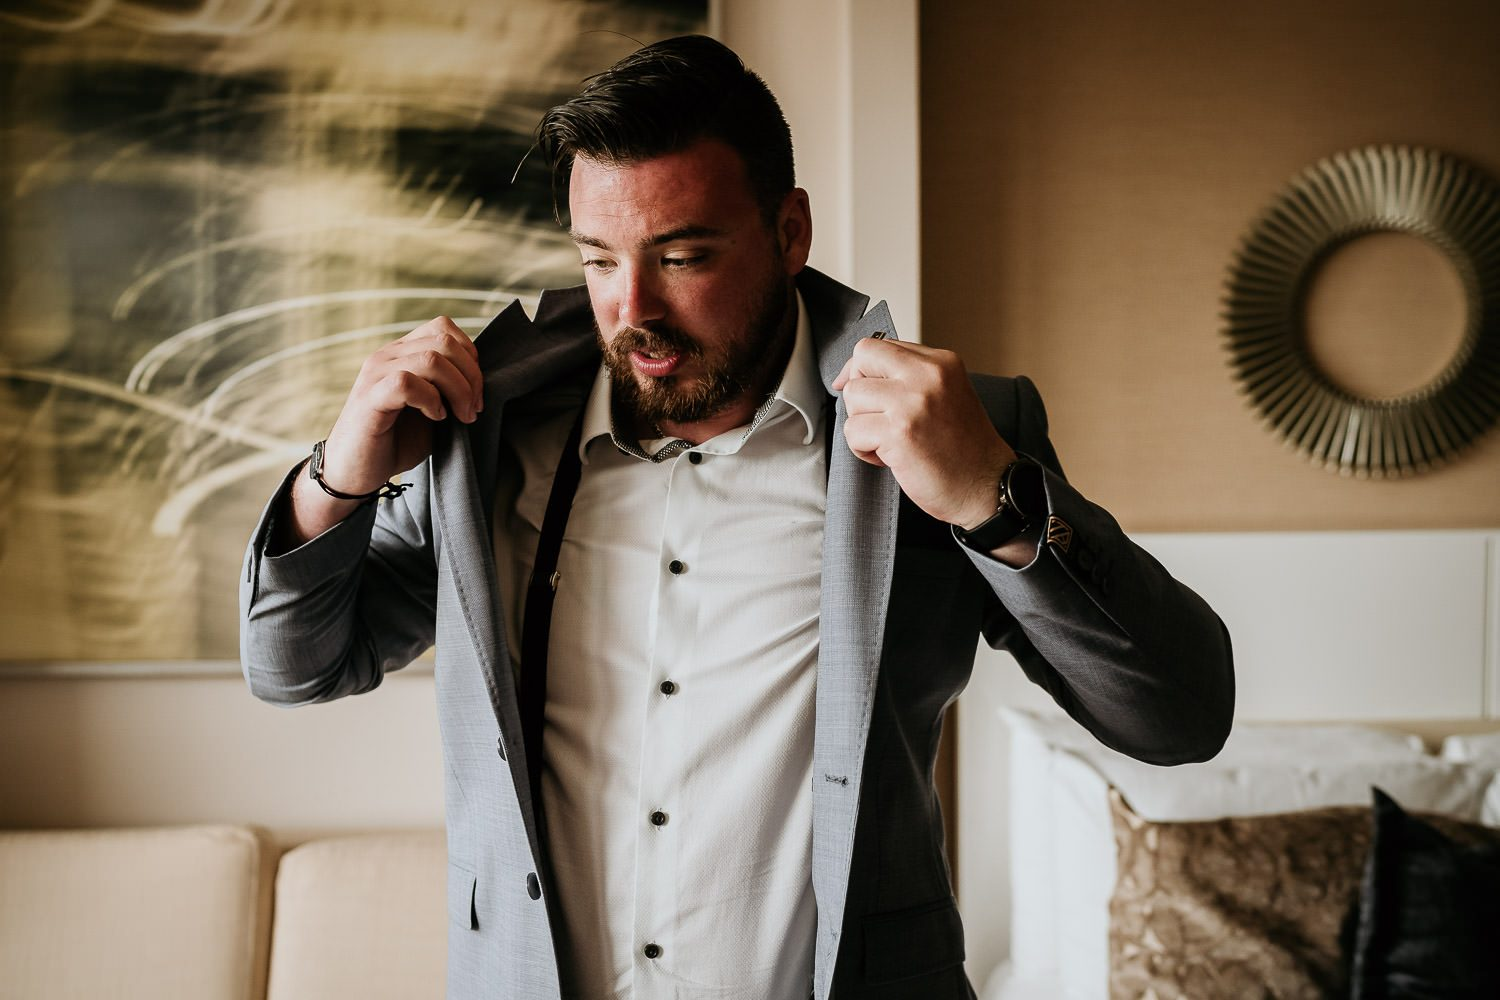 groom putting on suit jacket for wedding